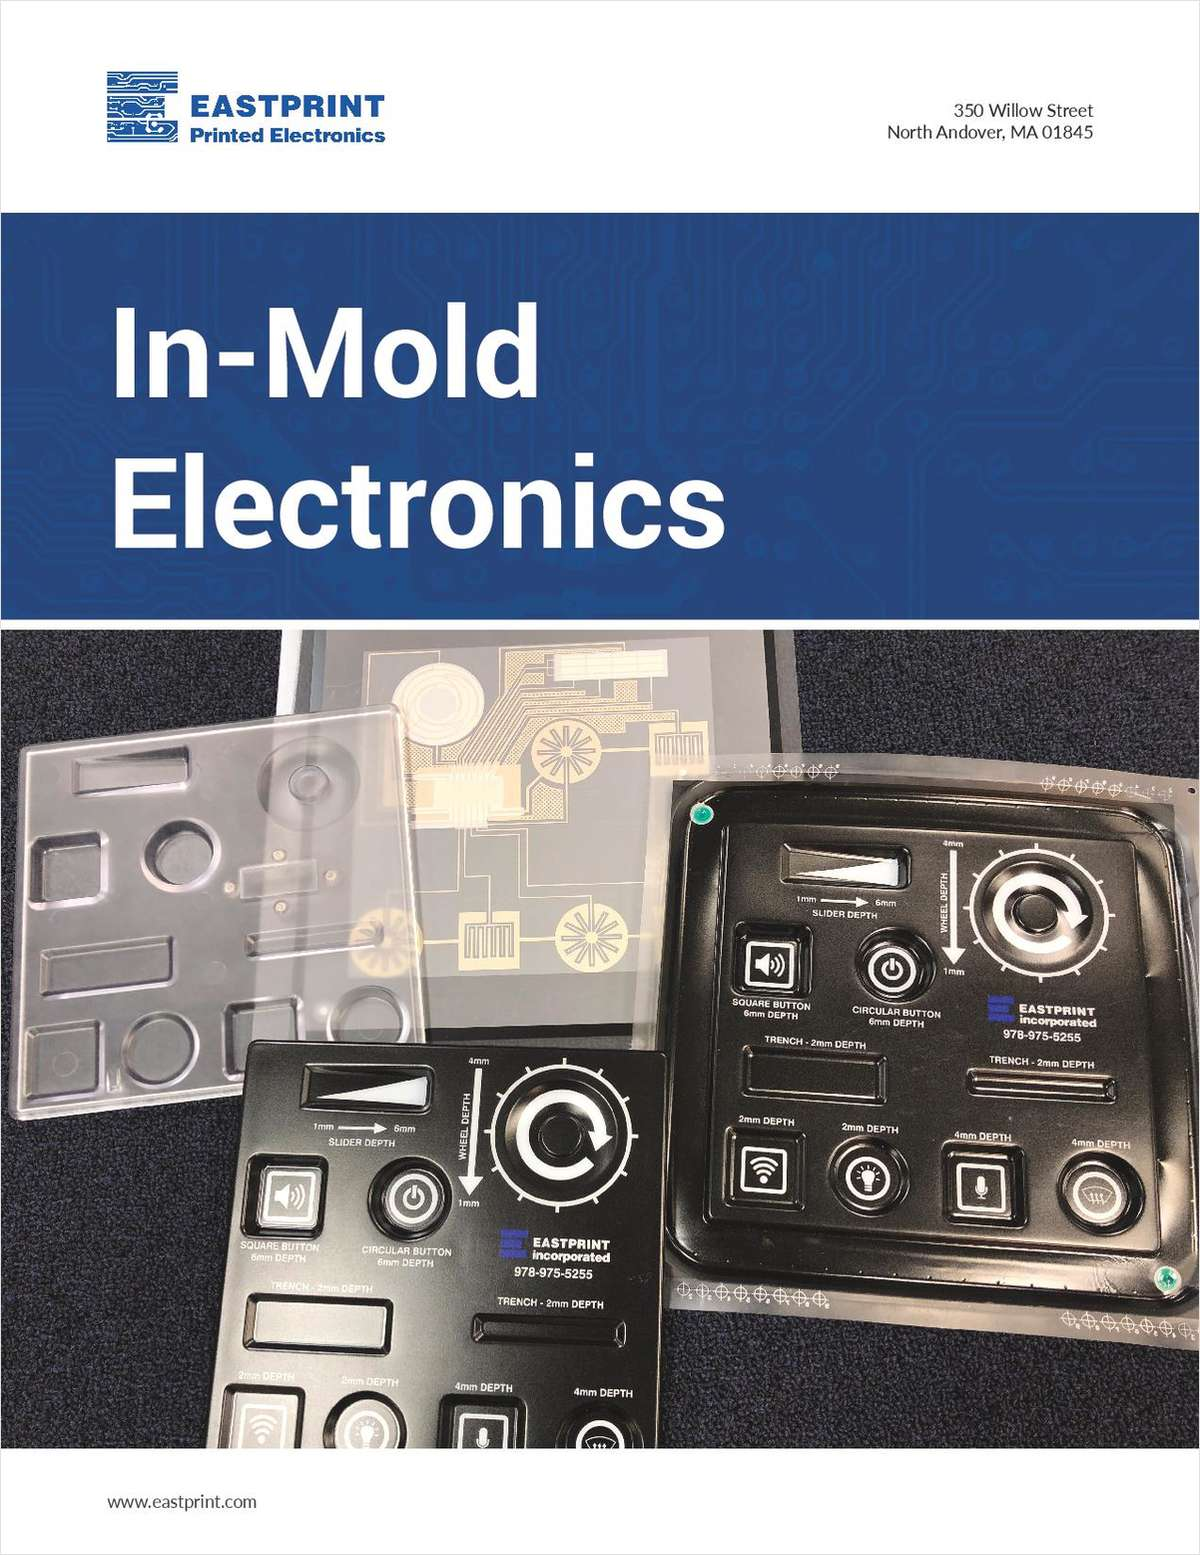 In-Mold Electronics